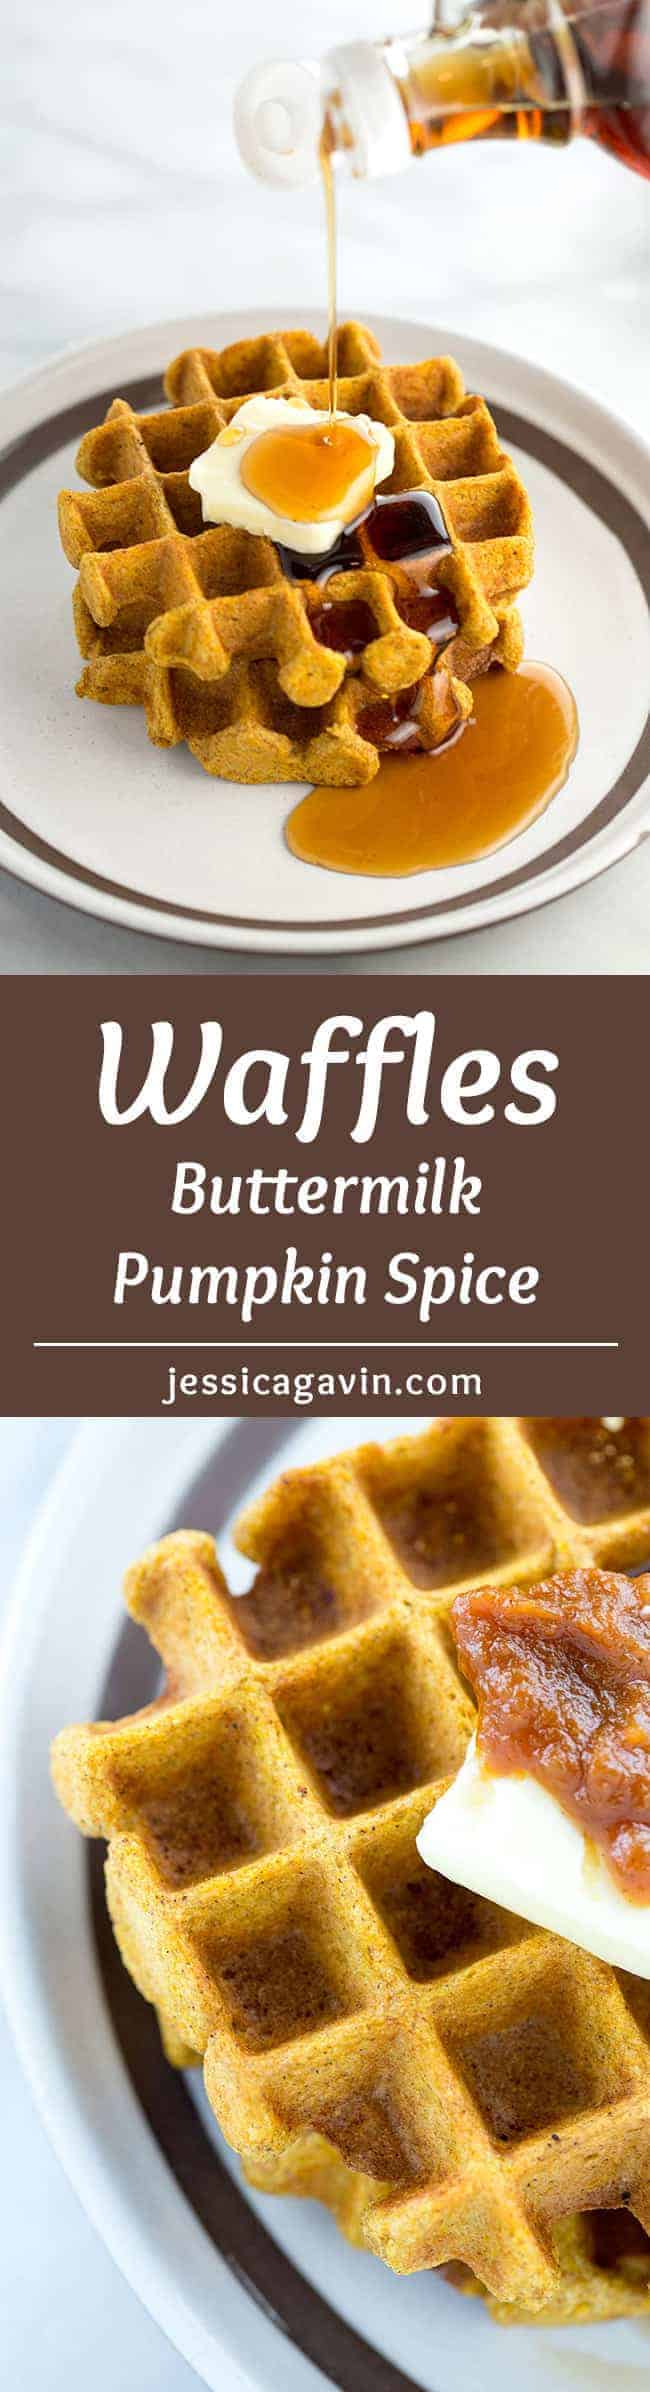 Buttermilk Pumpkin Spice Waffles - Wake up to some delicious waffles with homemade pumpkin butter! Packed with cinnamon, ginger, nutmeg and cloves in each bite.